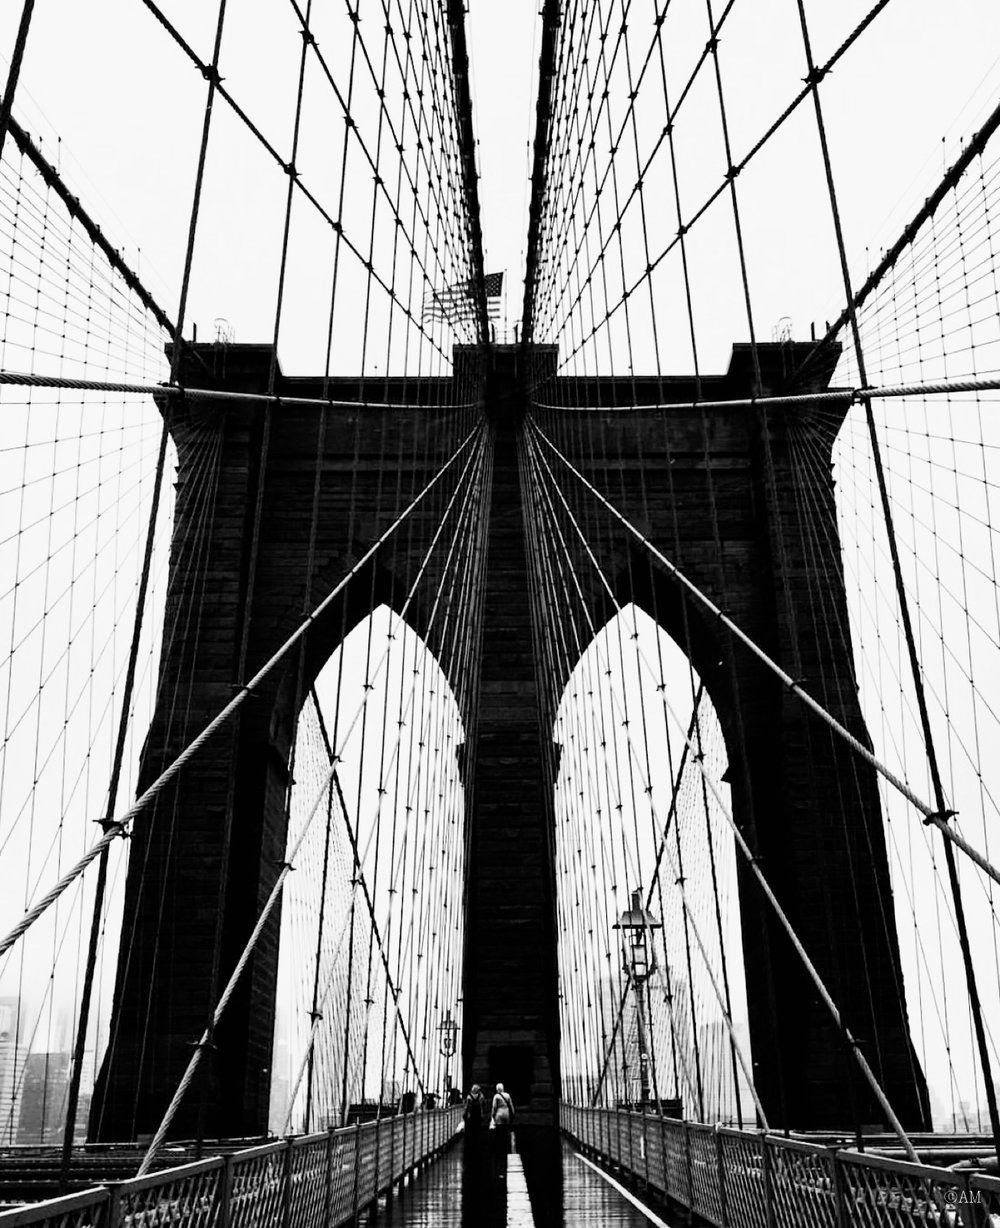 The Brooklyn Bridge was the first steel-wire suspension bridge ever built.